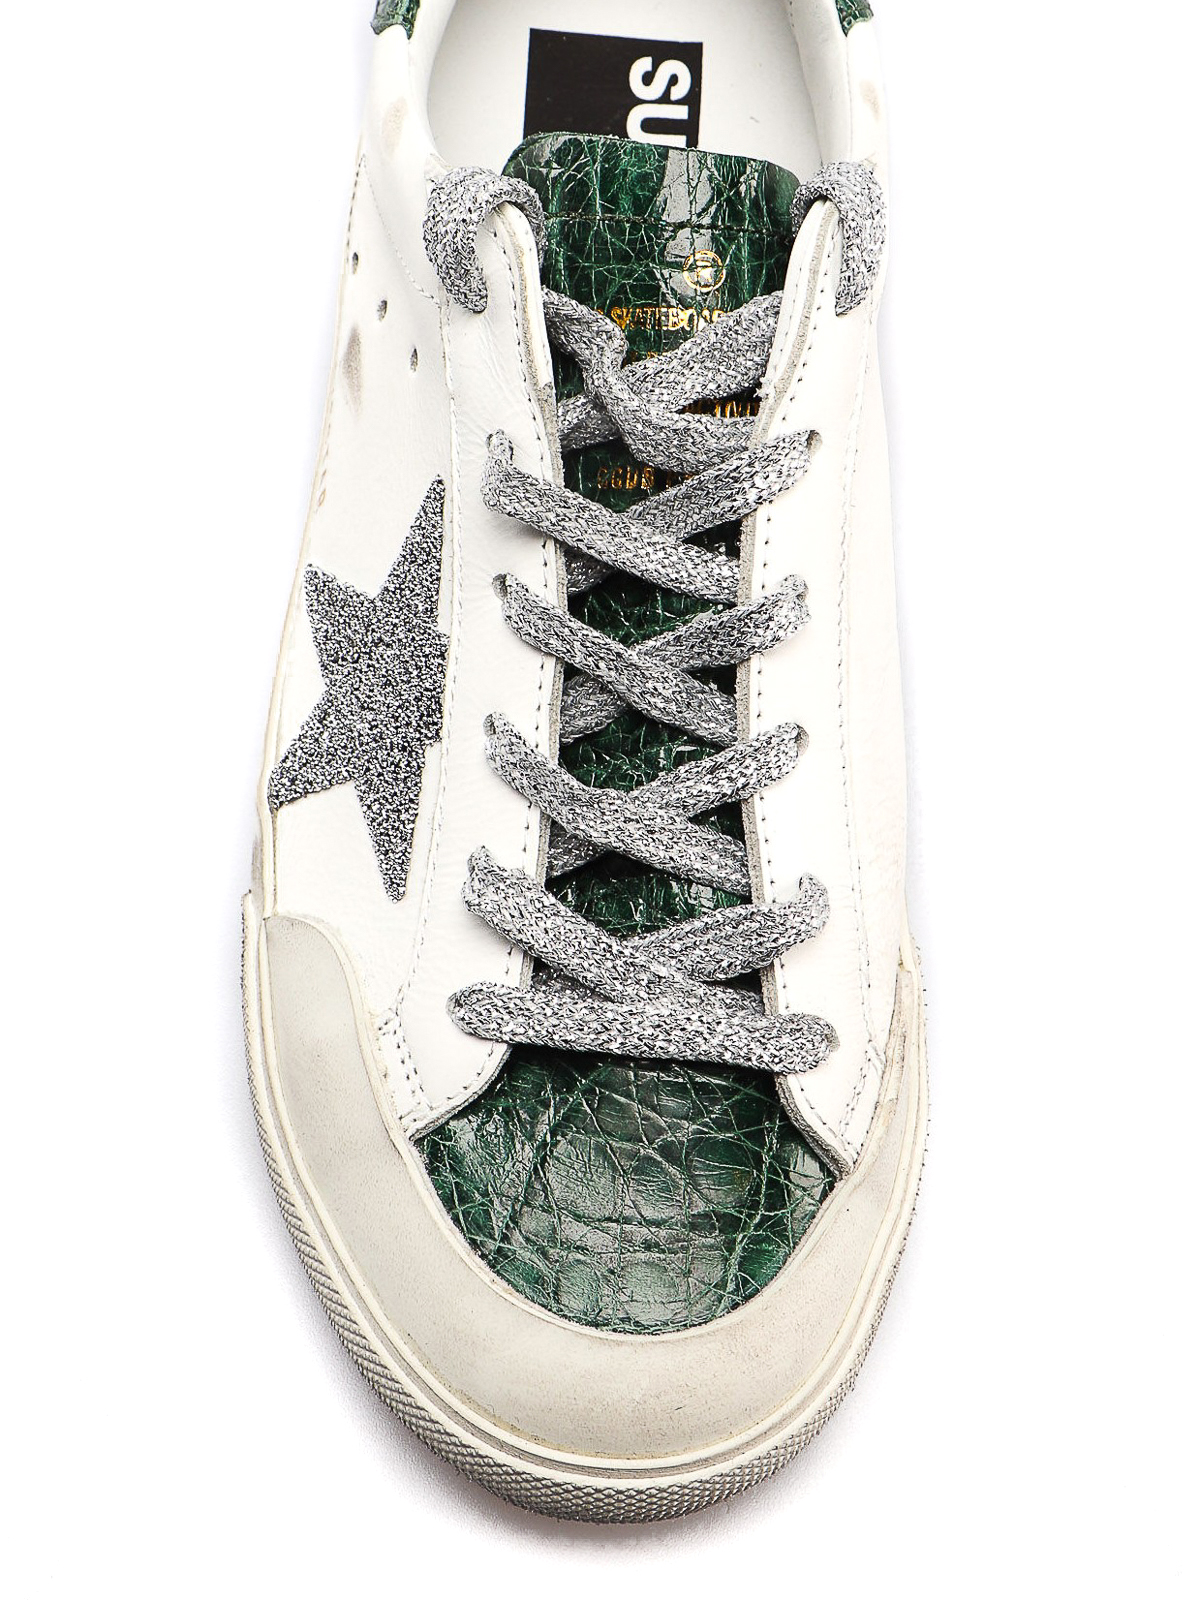 plus récent f17b3 f2d12 Golden Goose - Superstar croco print detailed sneakers ...